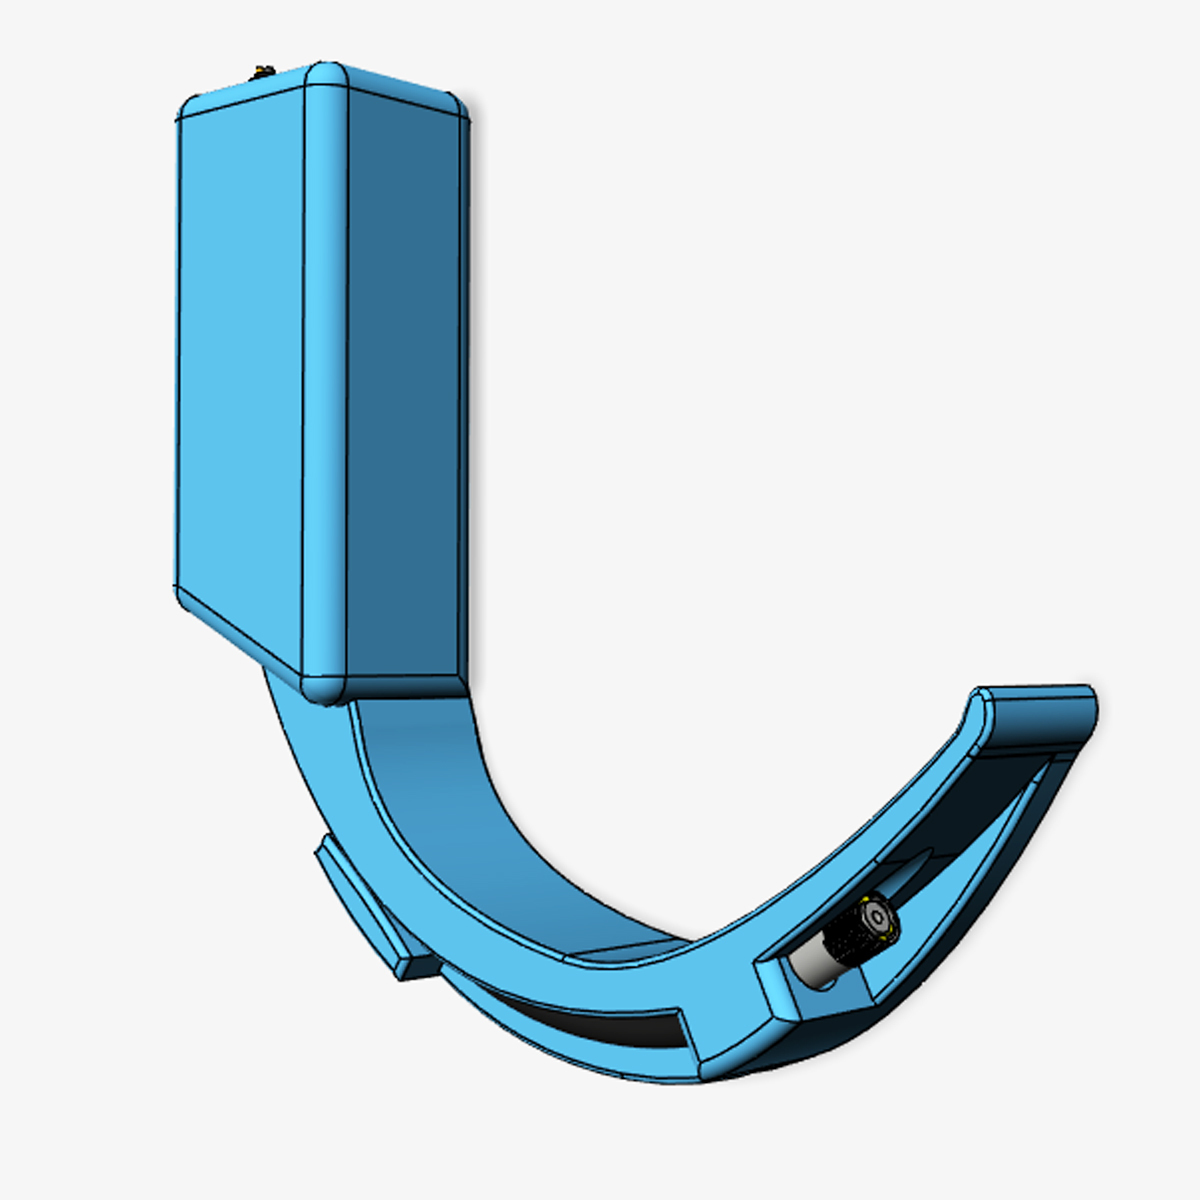 Videolaringoscopio (2).jpg Download free STL file Adult and Pediatric 3D Video Laryngoscope - 5.5mm - 7mm - 8mm + STEP • Design to 3D print, Checho3d